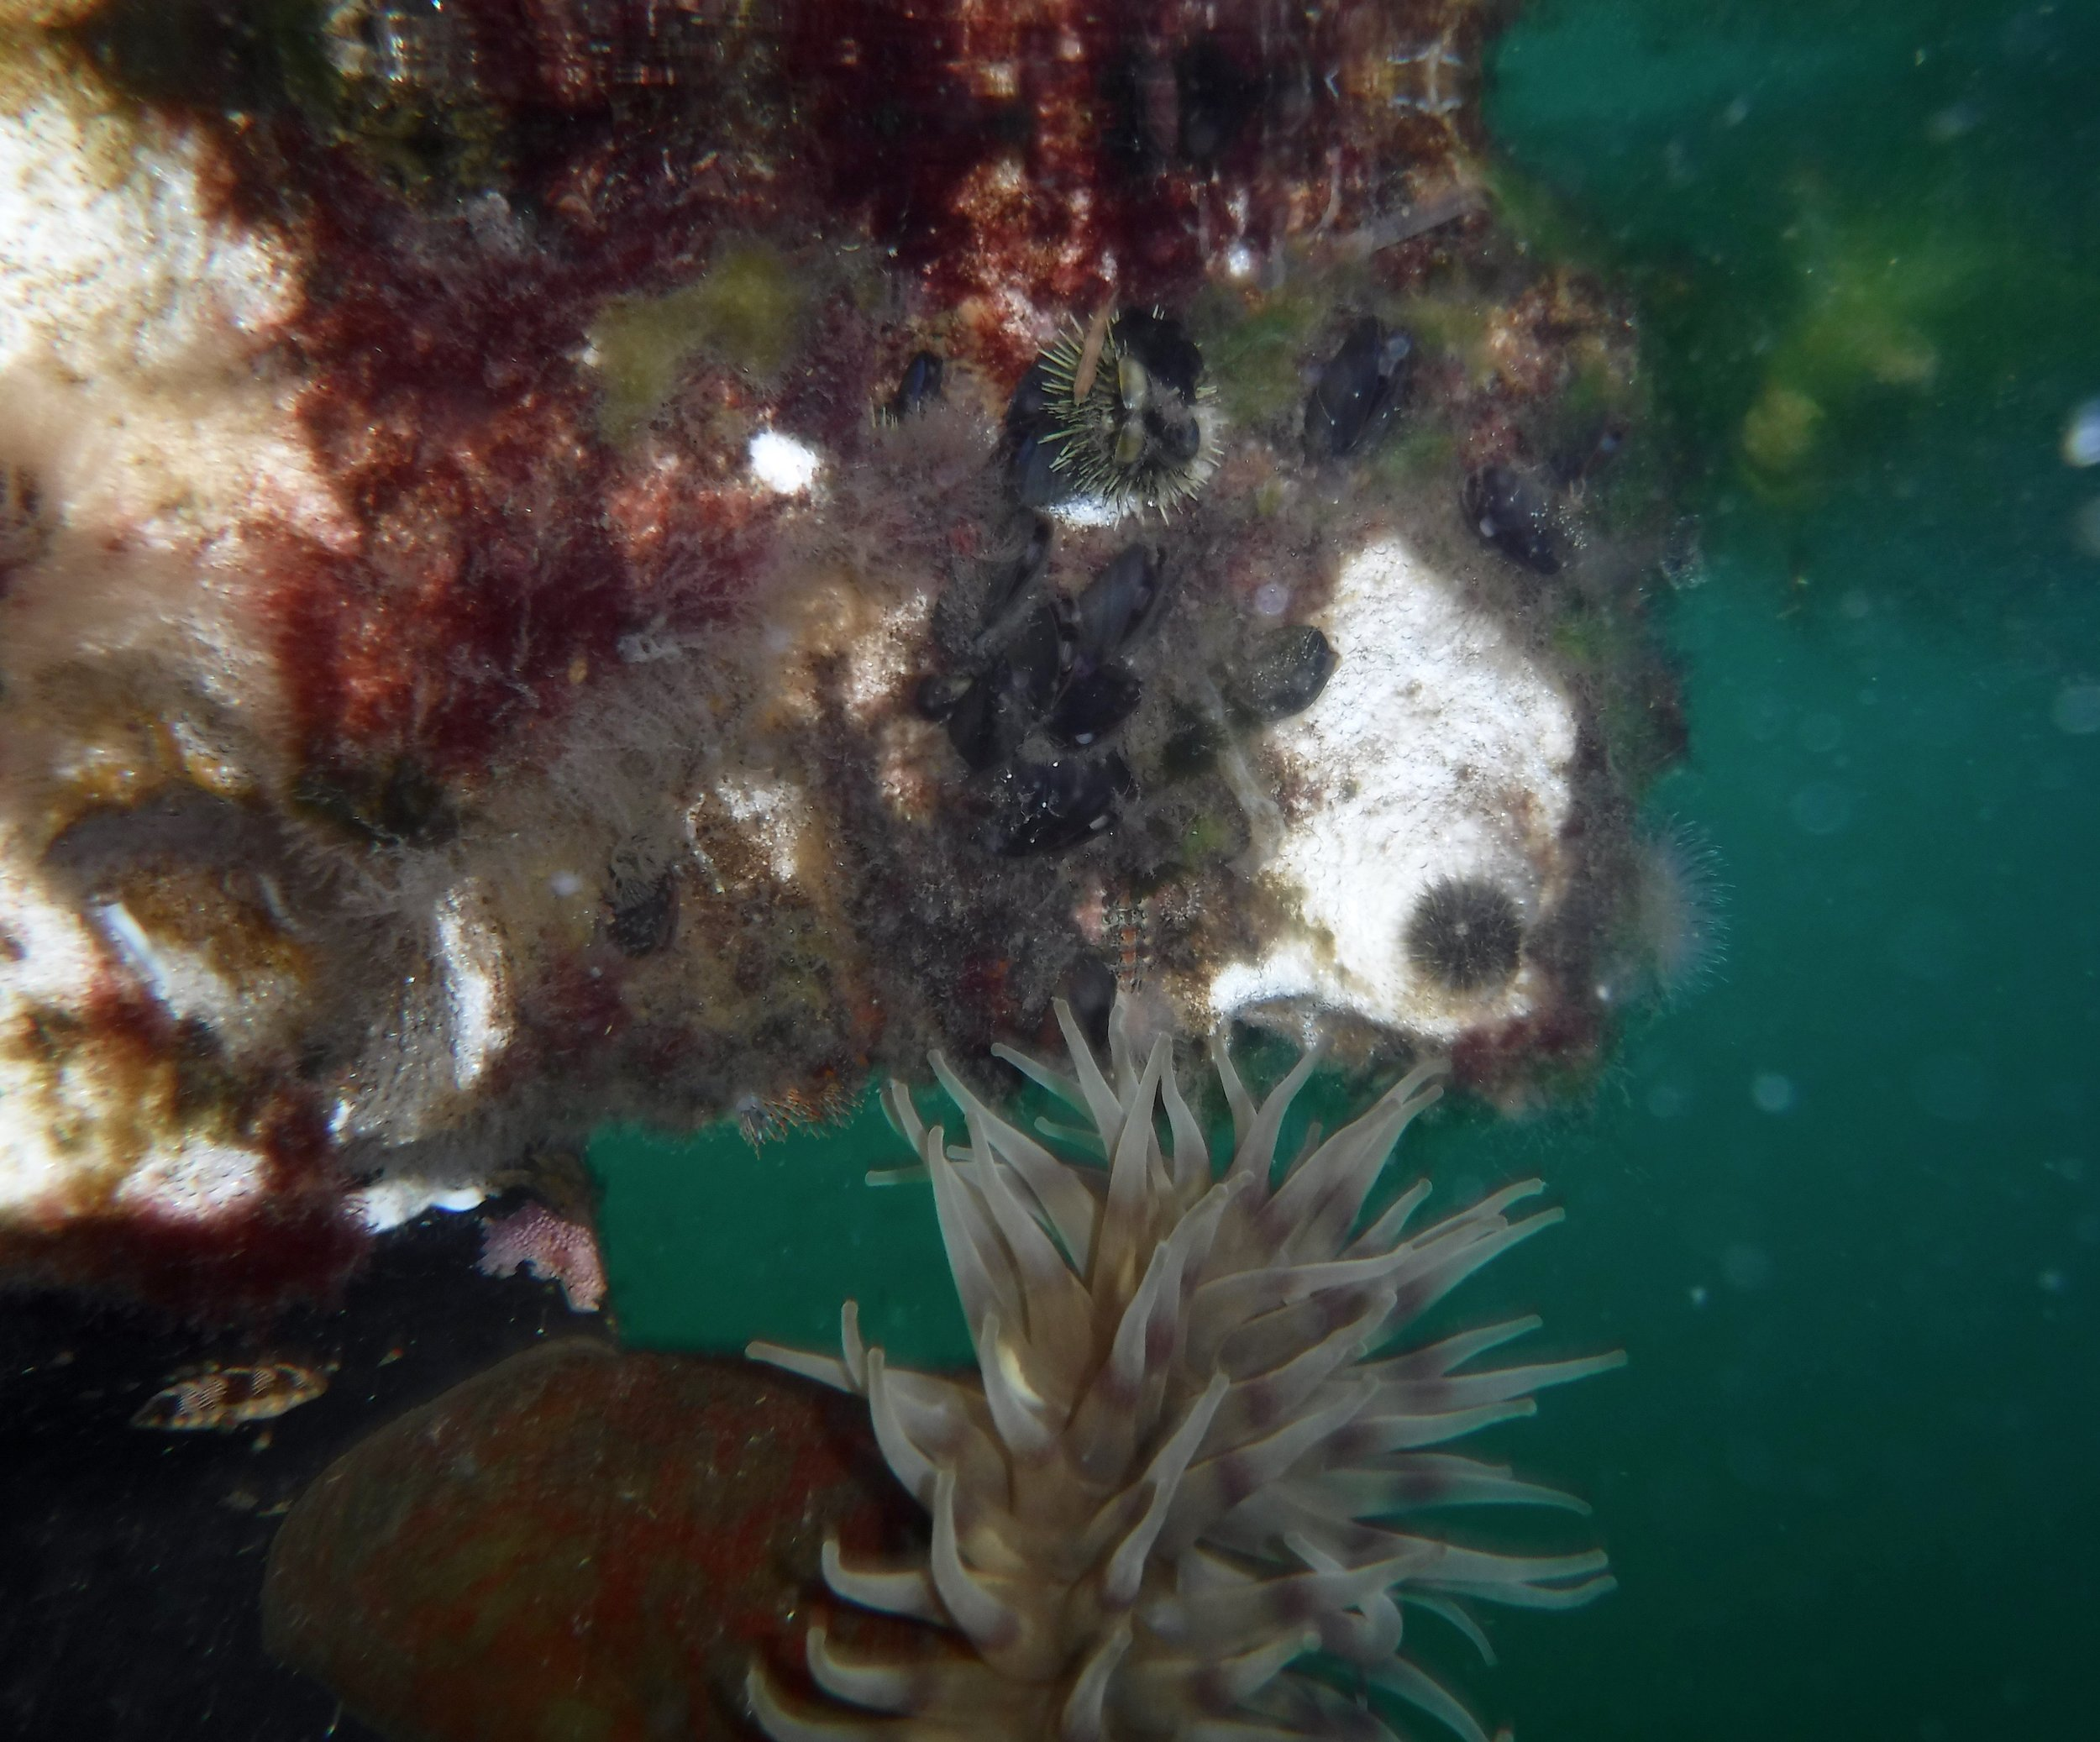 Lot of marine creatures were living under the dock.